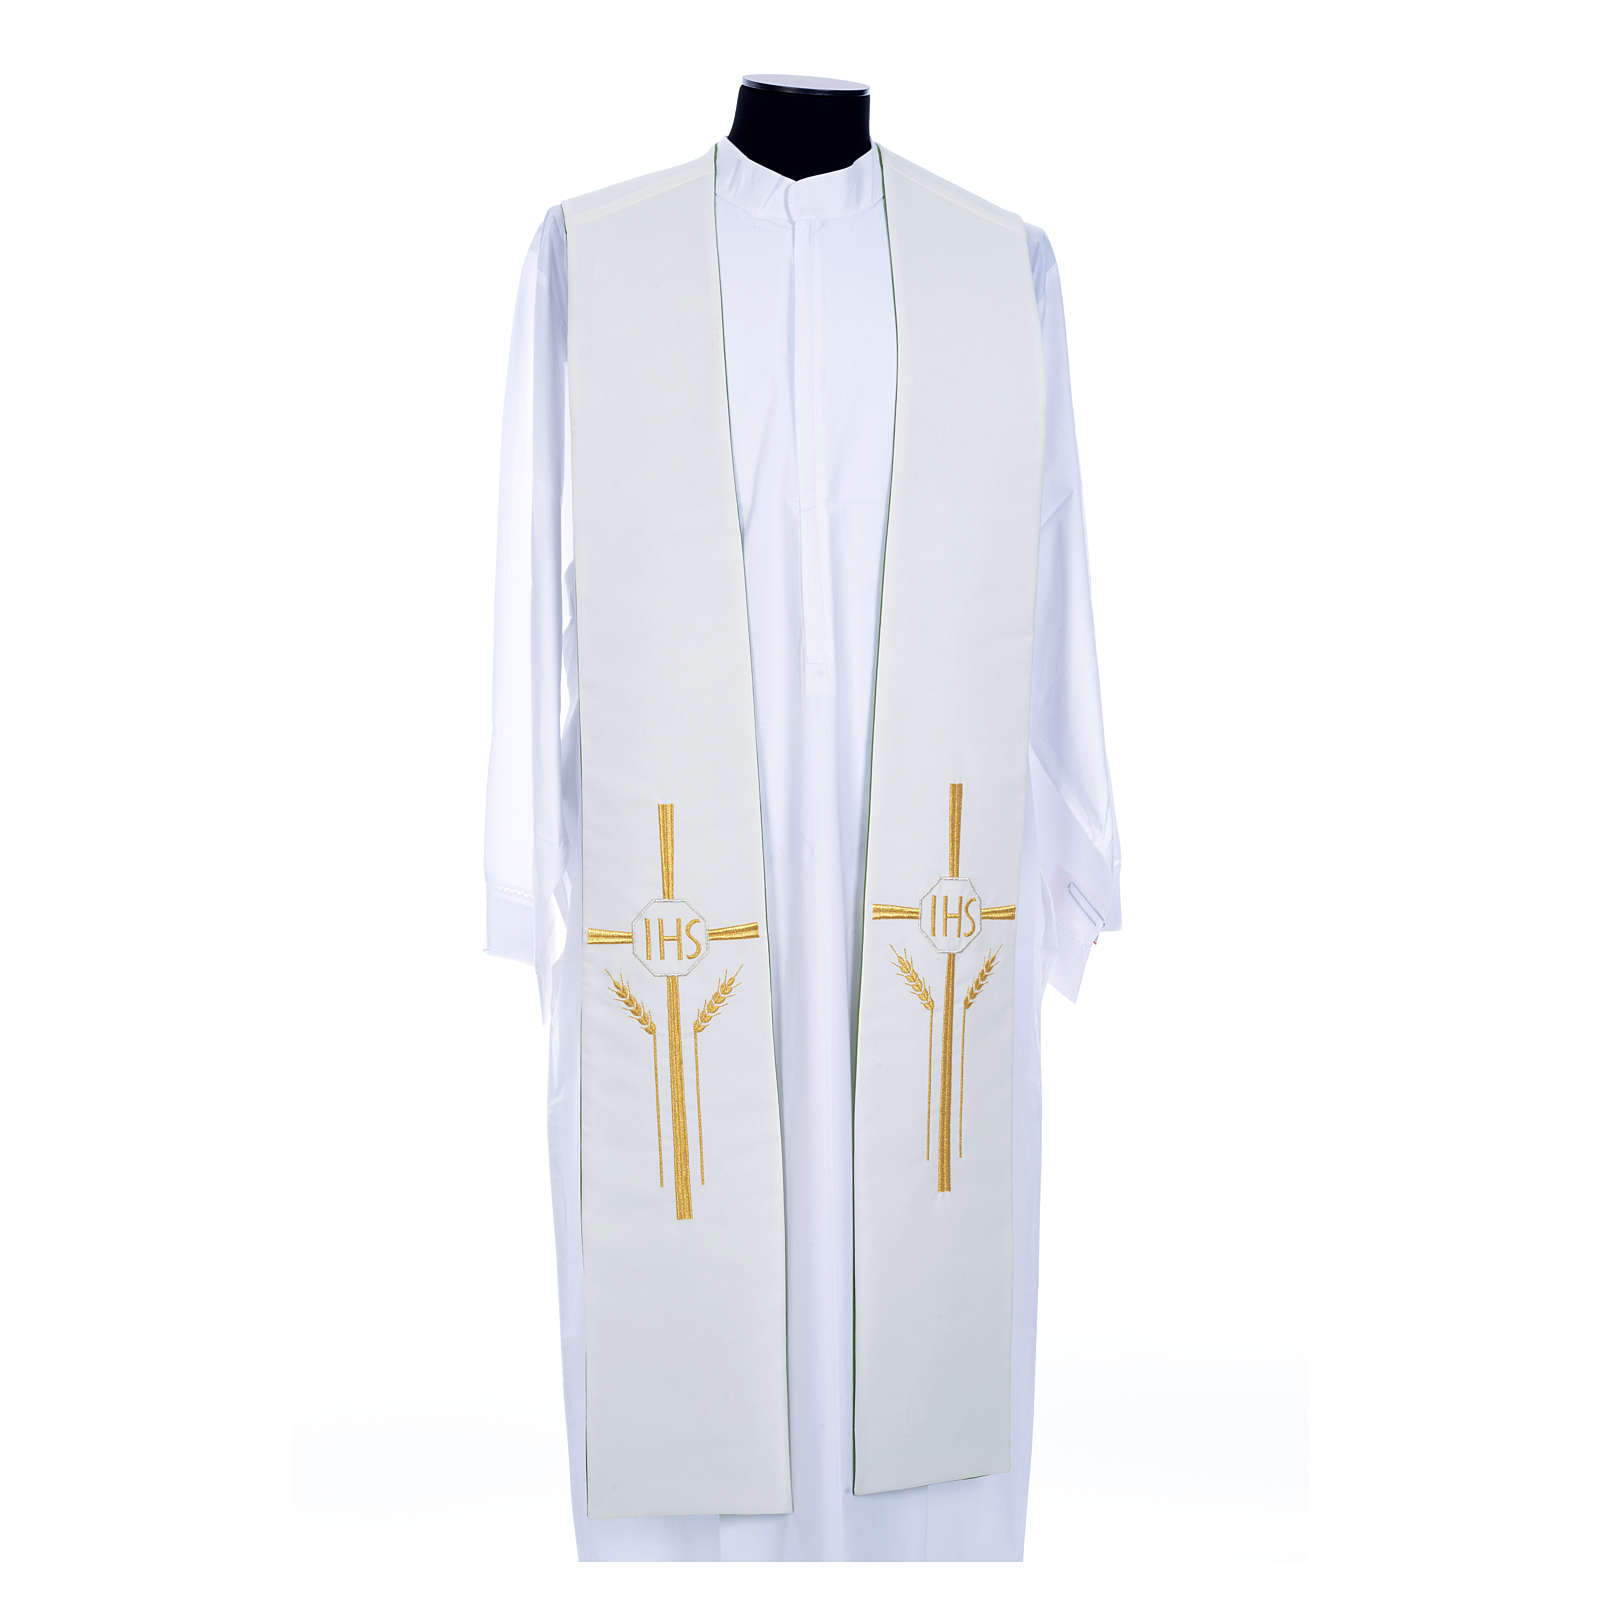 Clergy Stole in polyester, bi-colored green and white with JHS and whe 4